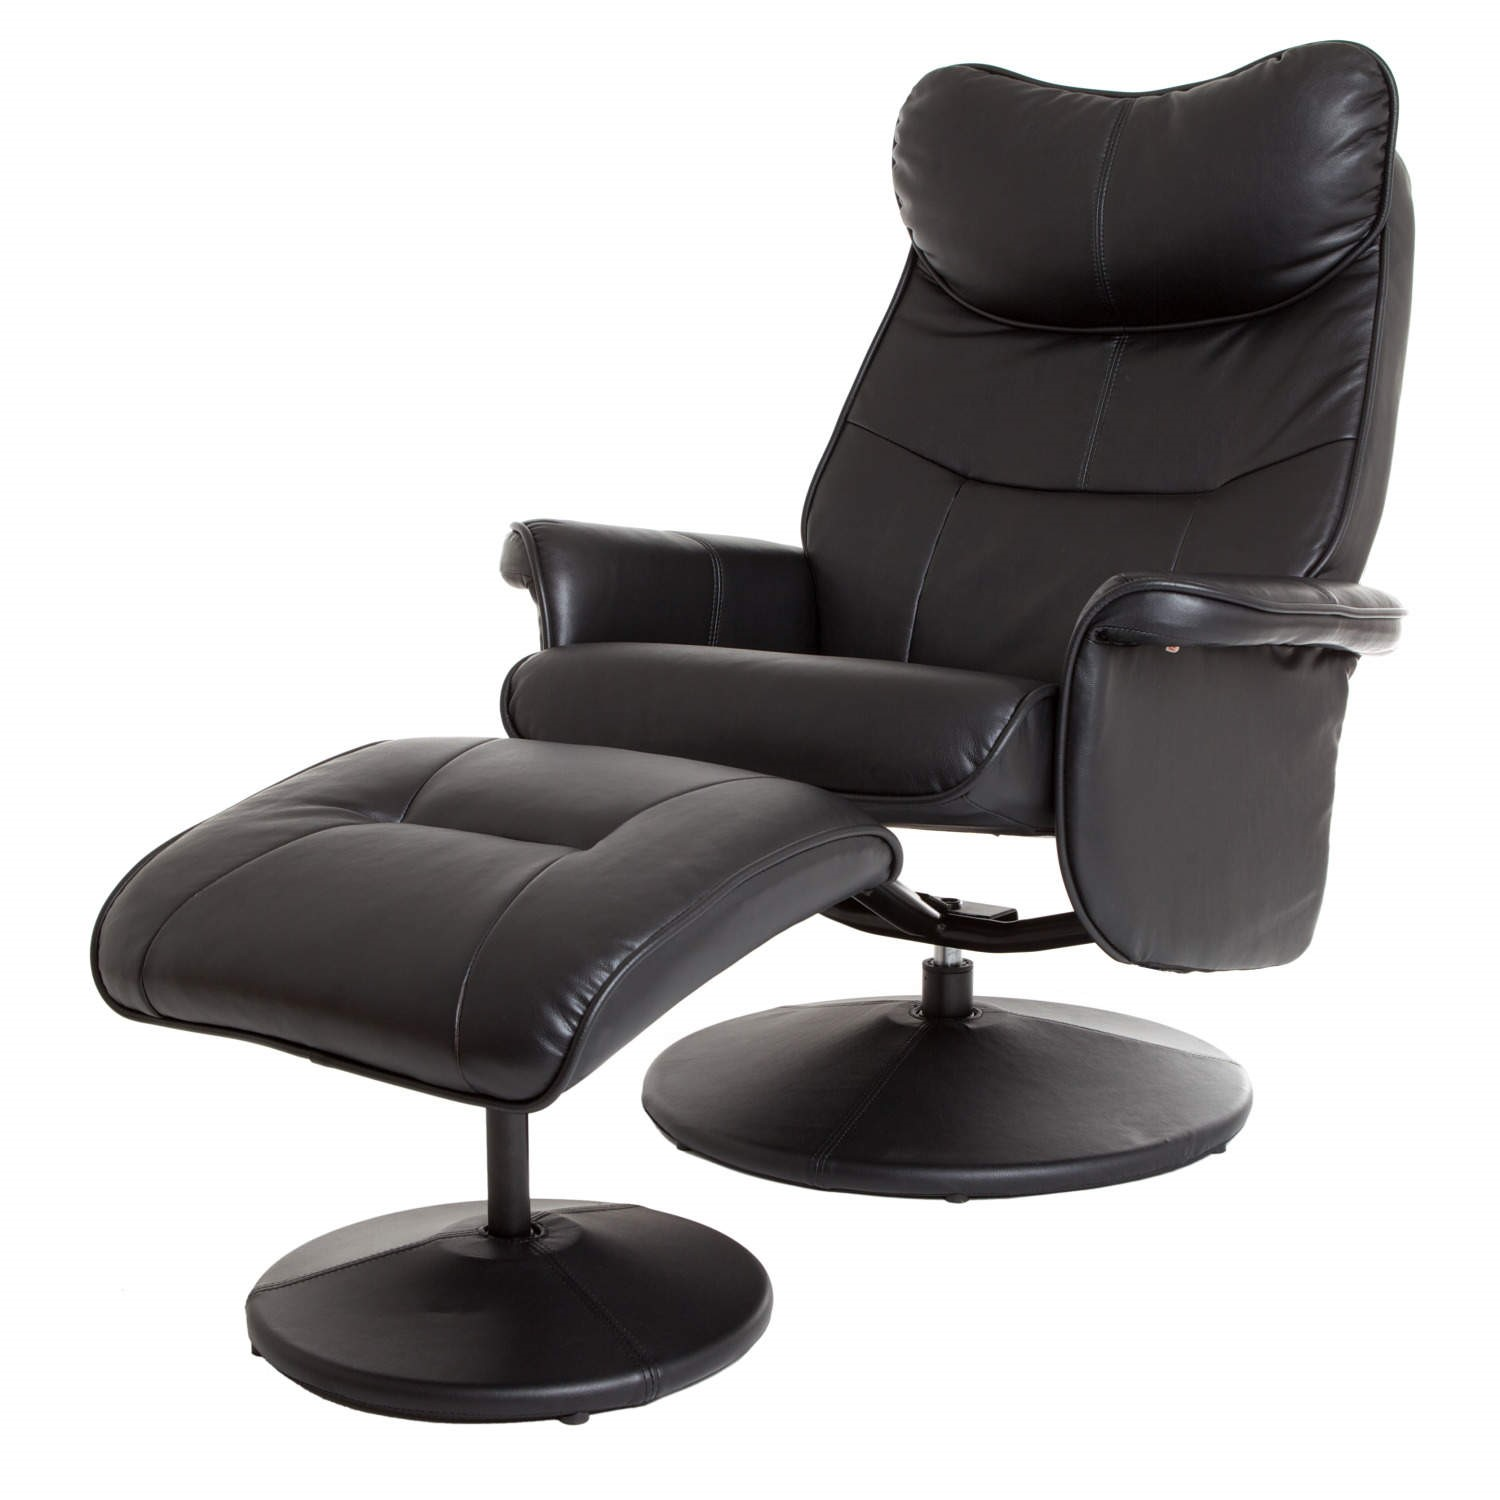 Global Furniture Alliance Amsterdam Faux Leather Swivel Recliner Footstool In Black Furniture123